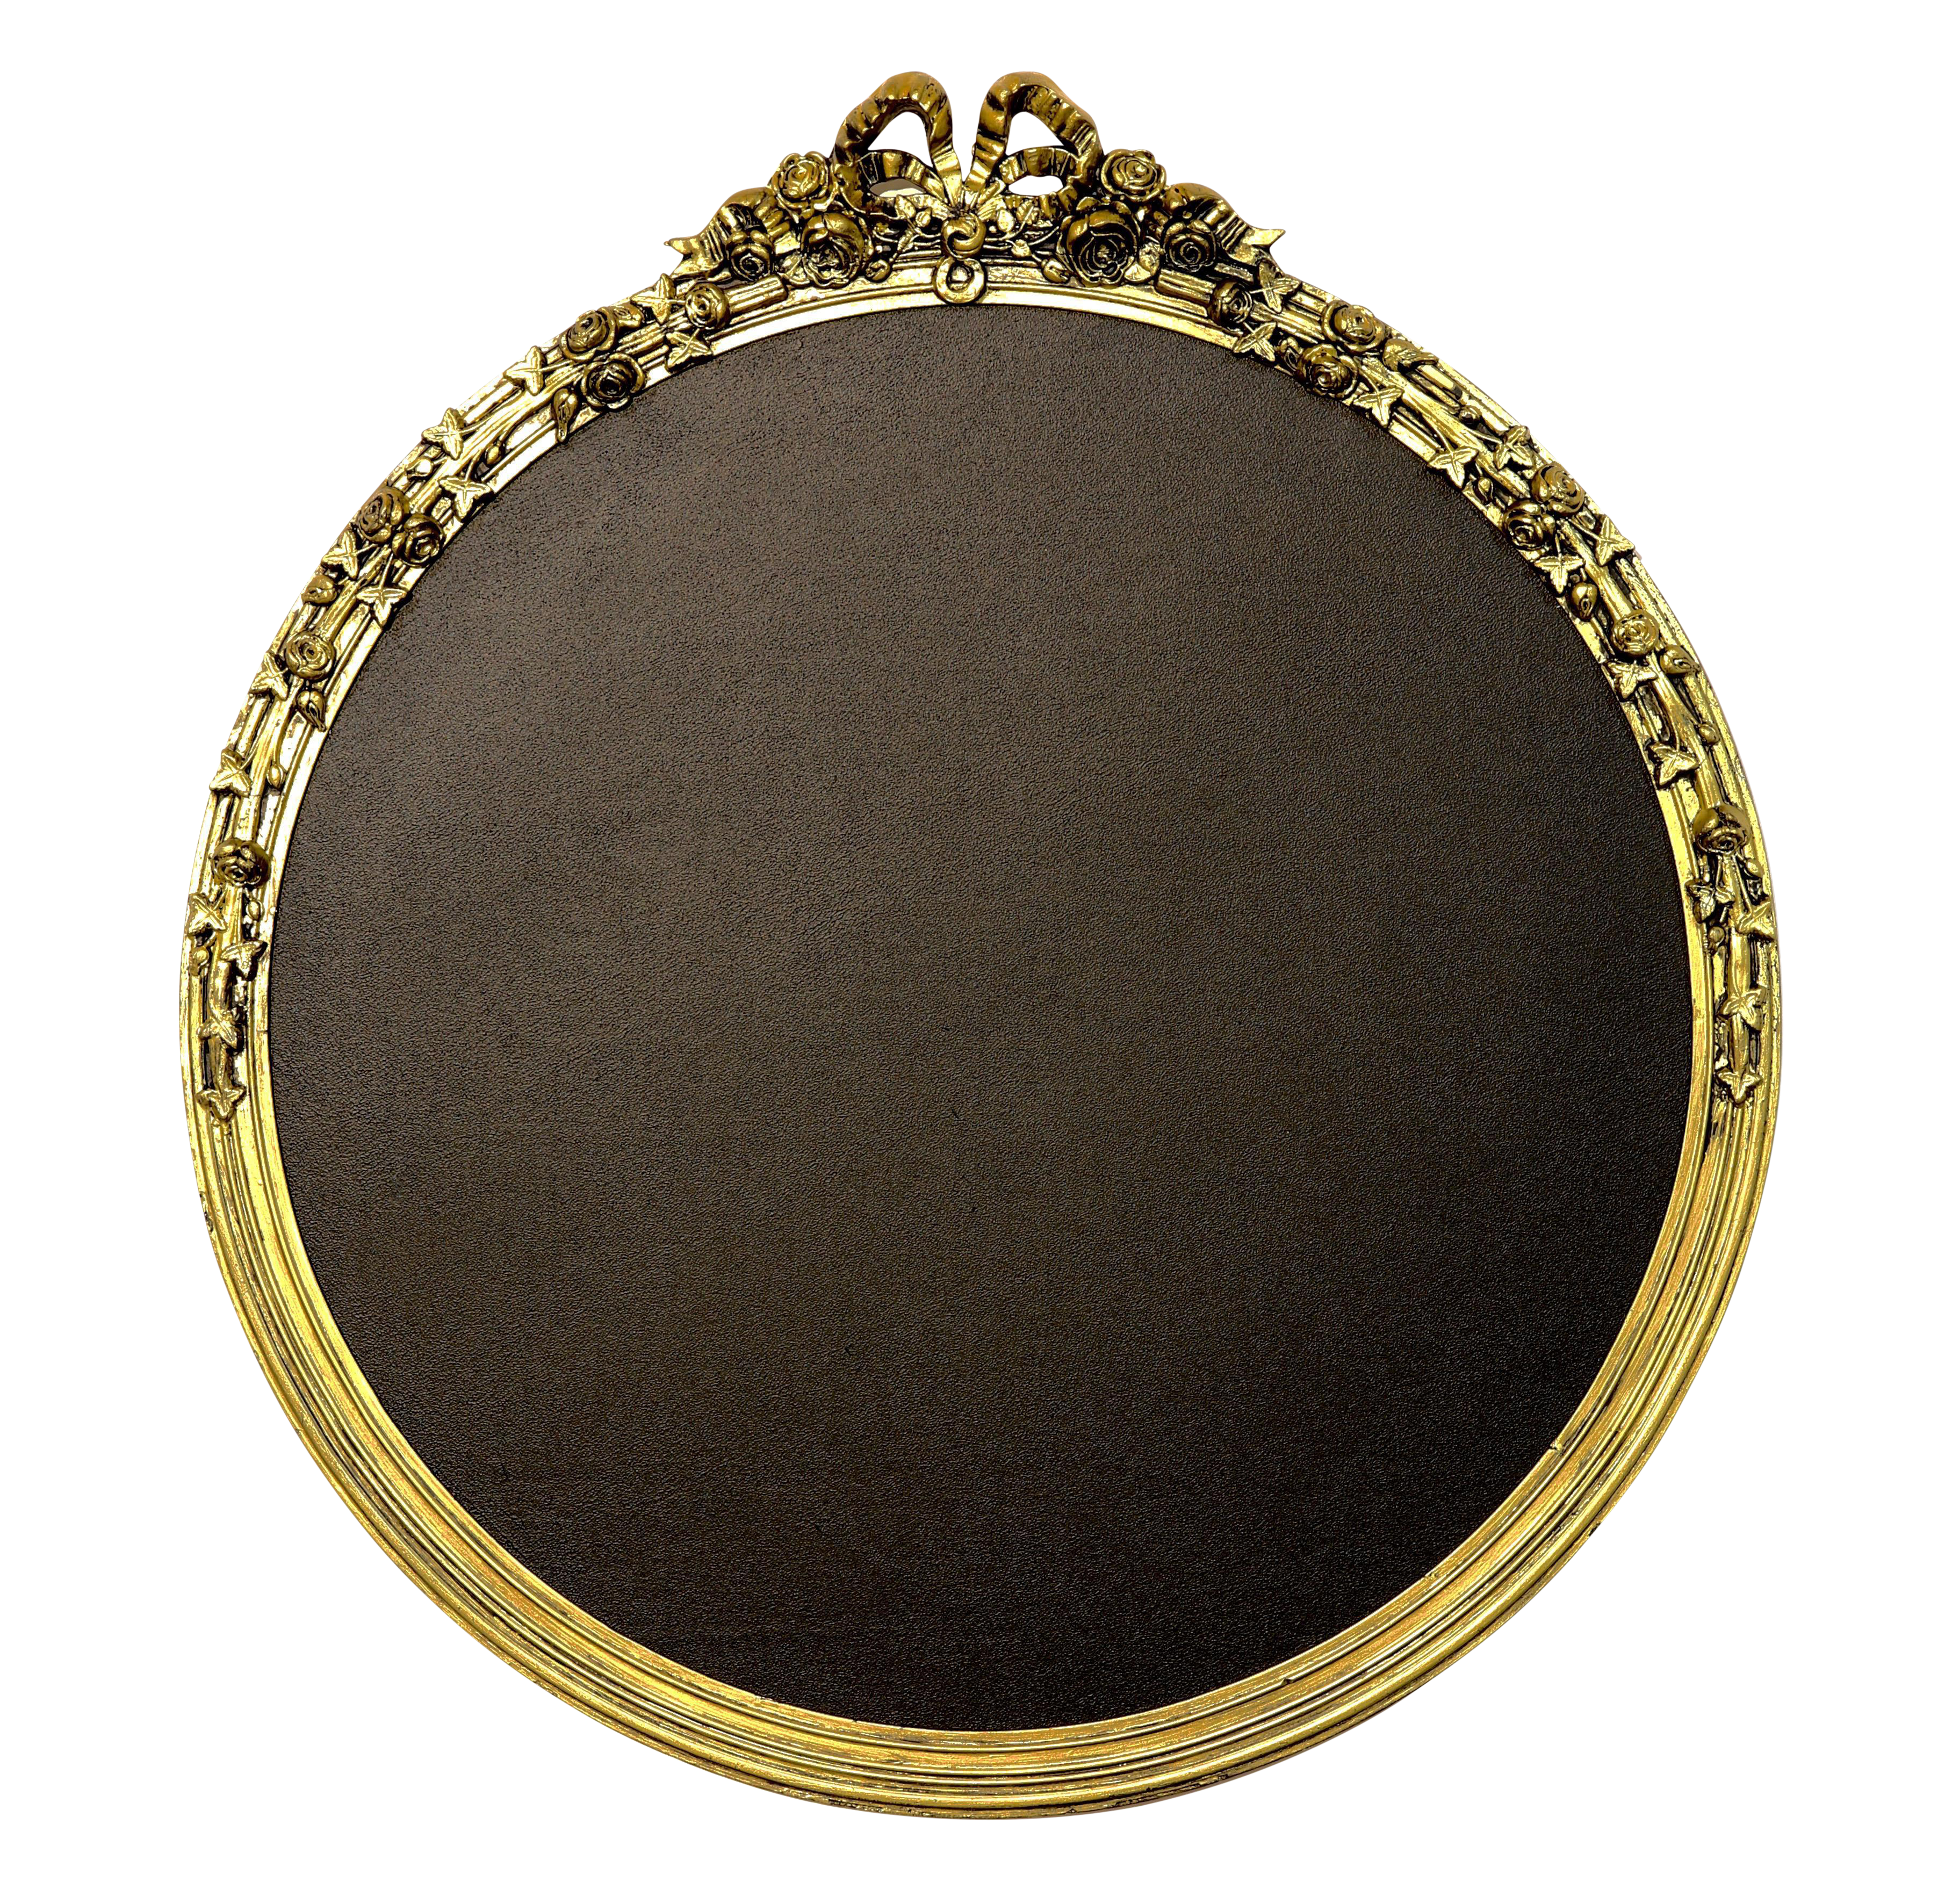 Chalkboard frame png. Round gold framed chairish